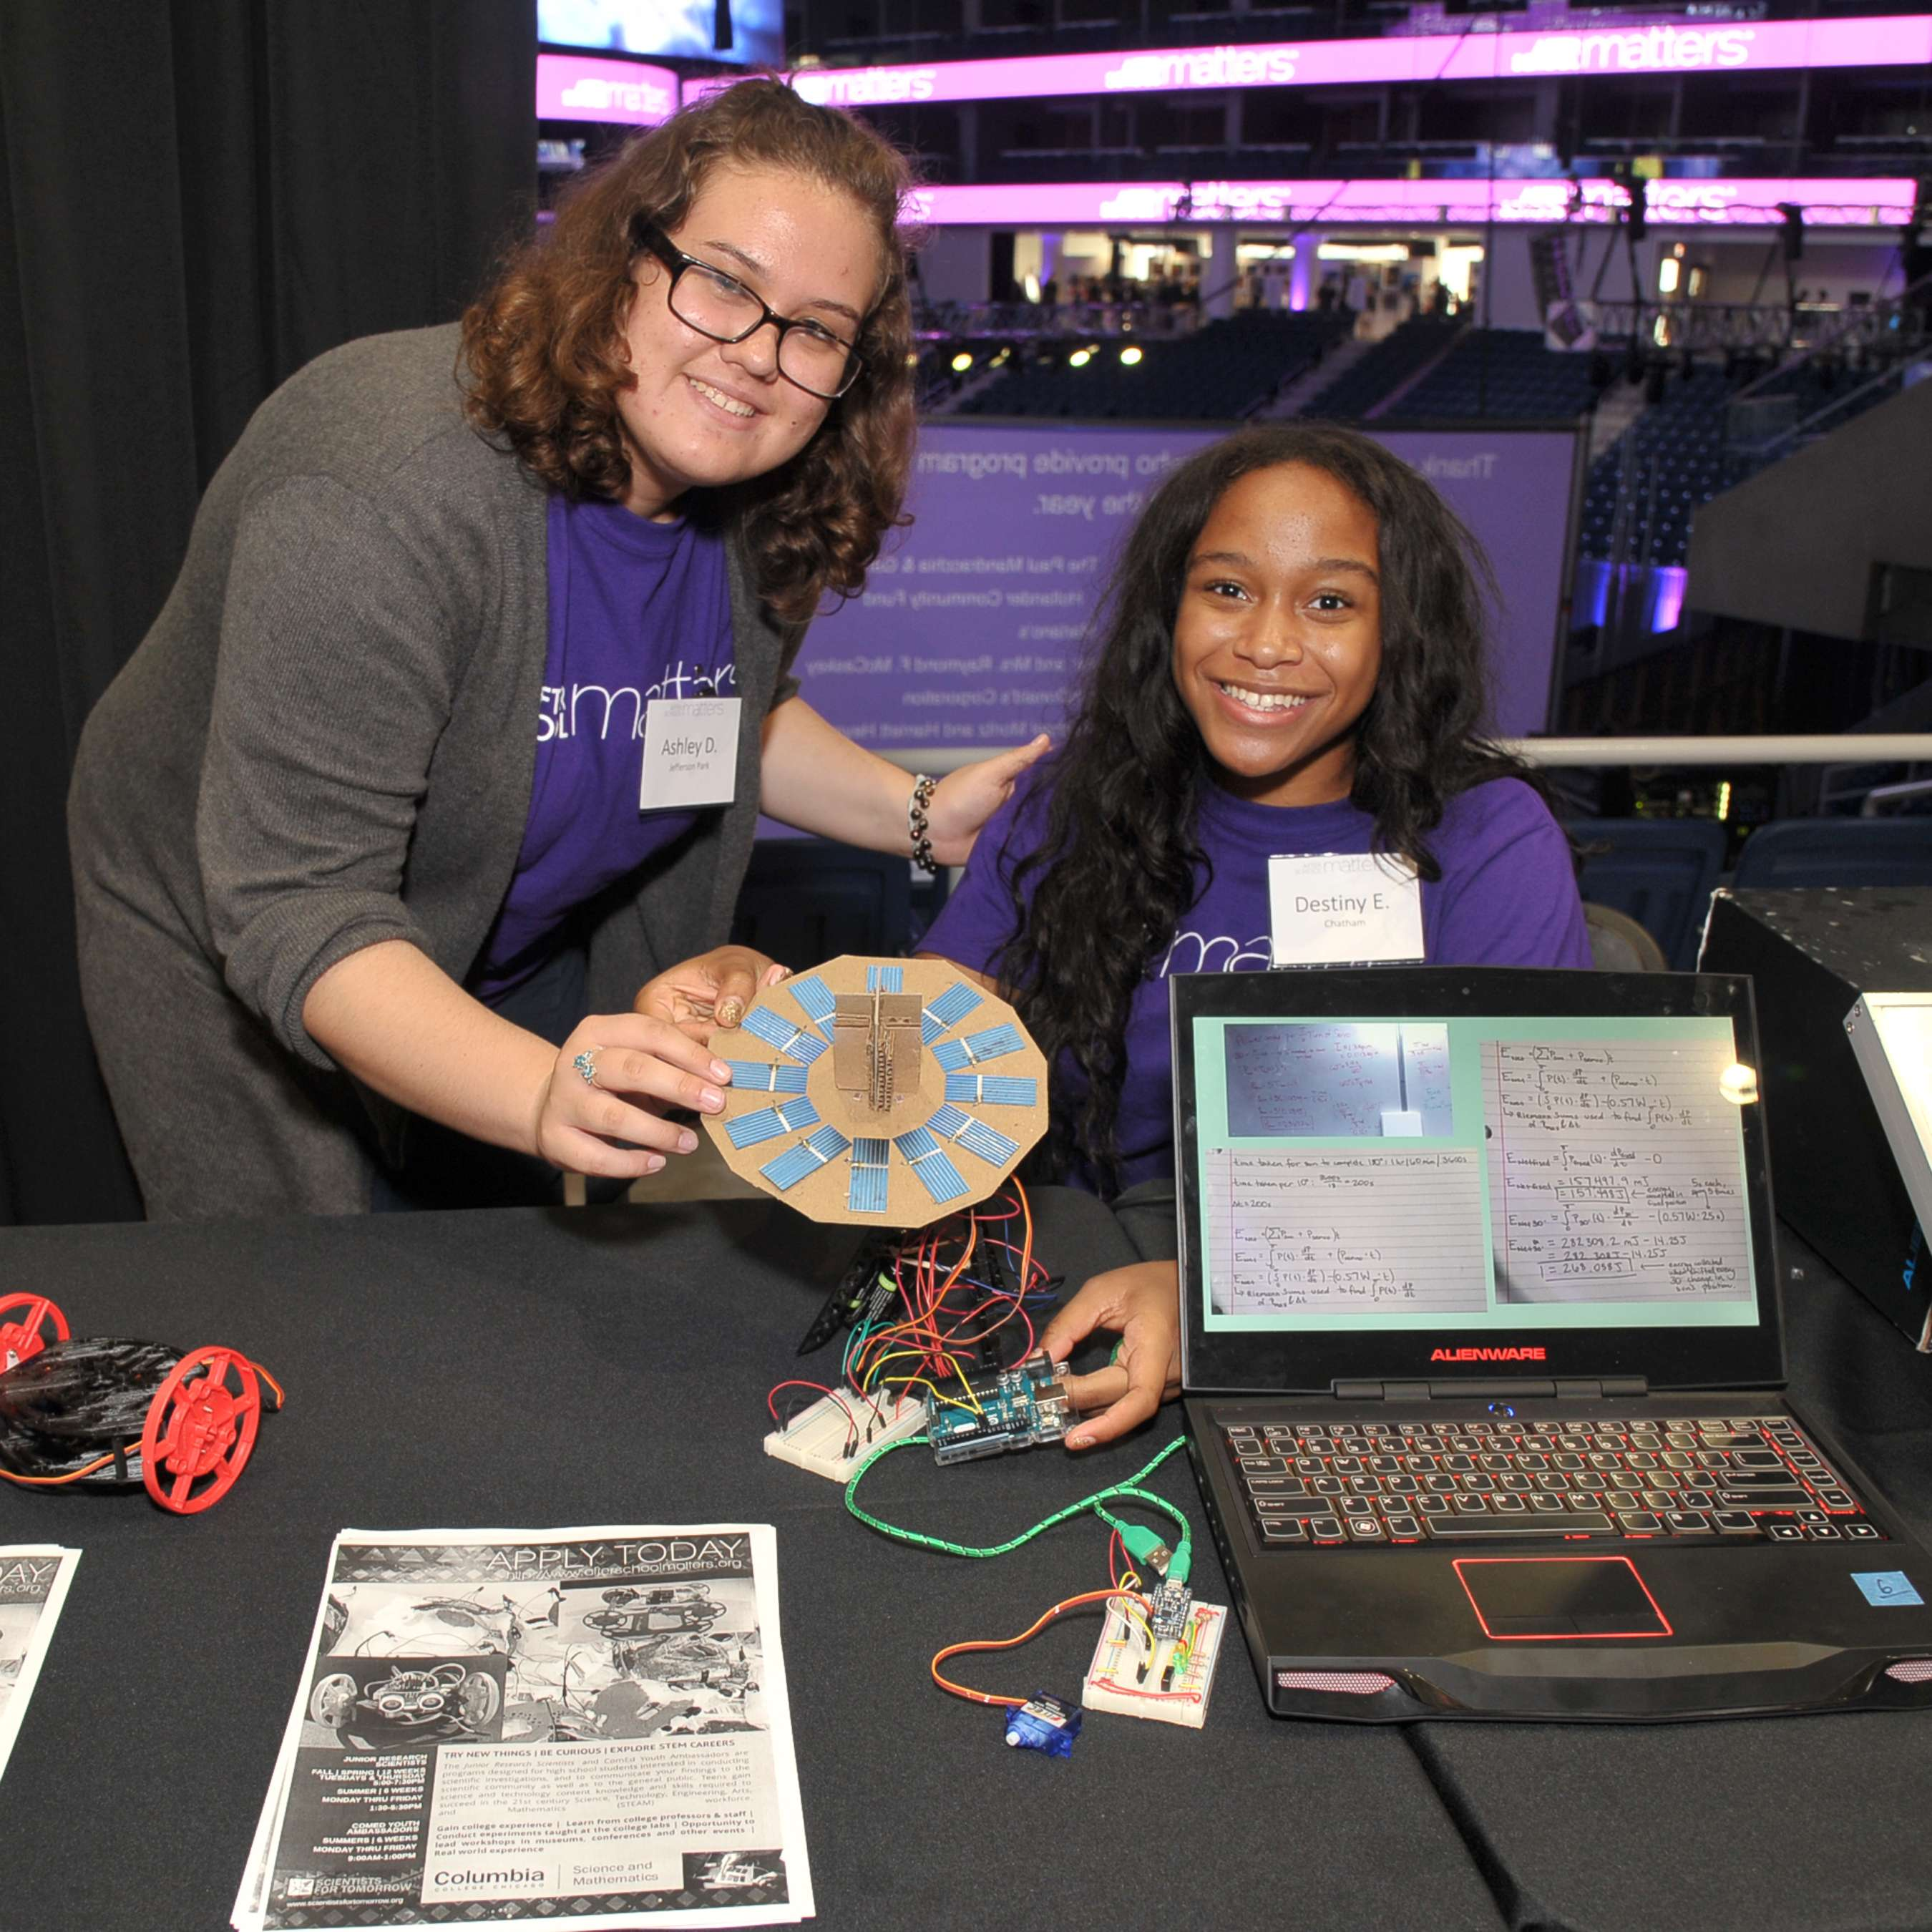 <p>Teens Ashley and Destiny show off a circuit board they created in their summer program, powered by long-time youth program supporters ComEd, during the gallery hour at the After School Matters Annual Gala on September 18, 2017. Photo credit: Dan Rest</p>